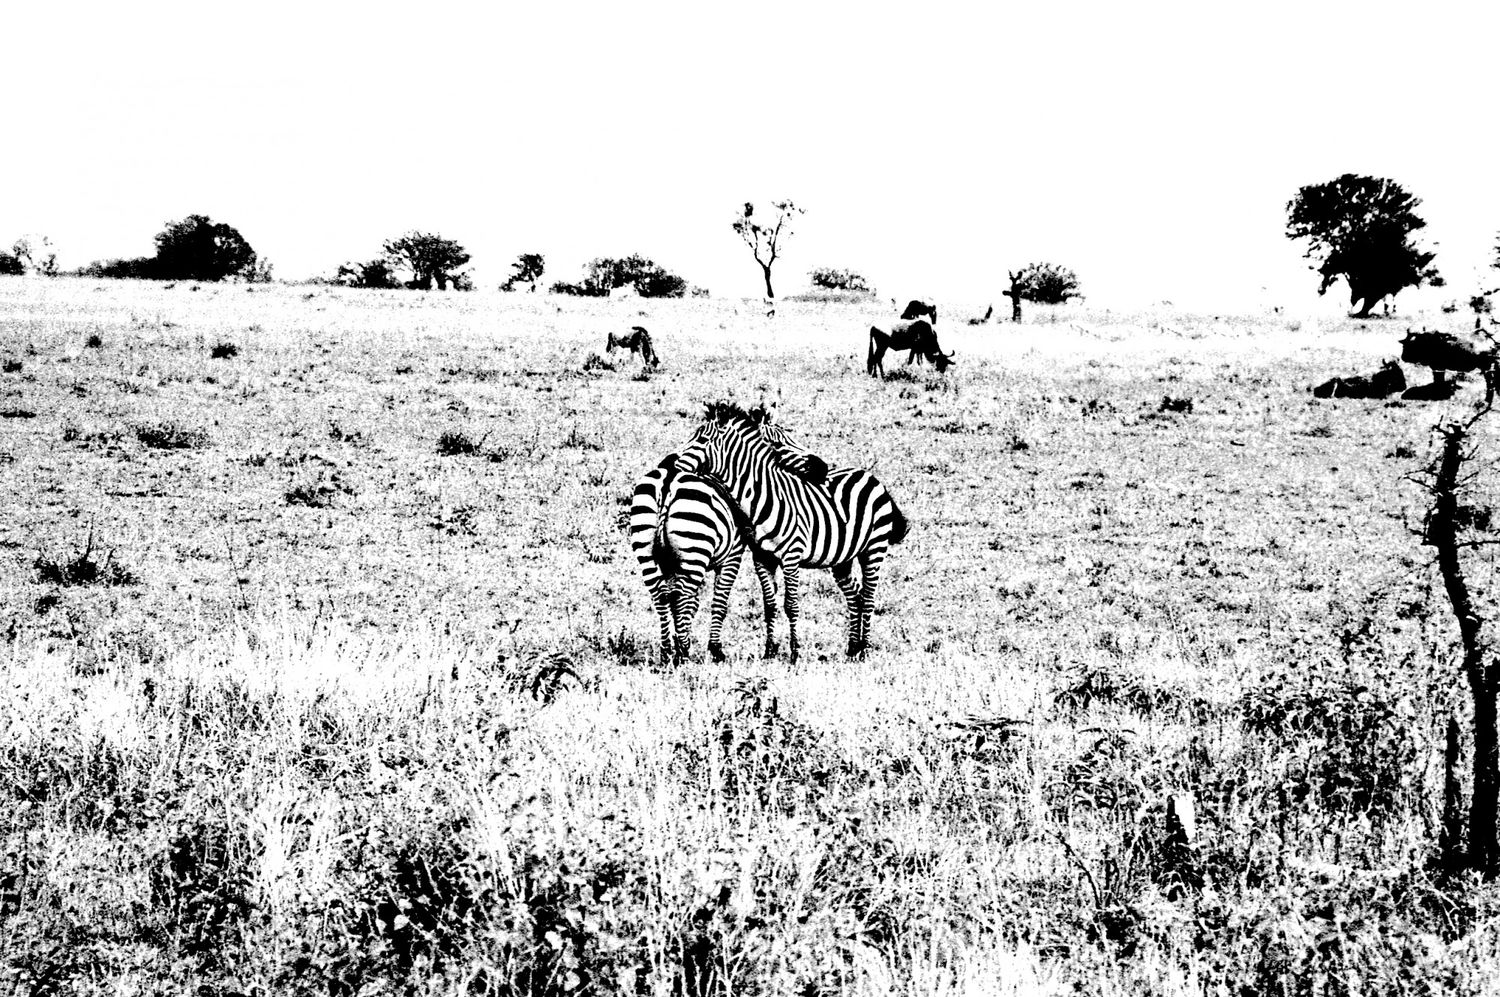 Zebra - 5, Serengeti 2016   Edition 1 of 2